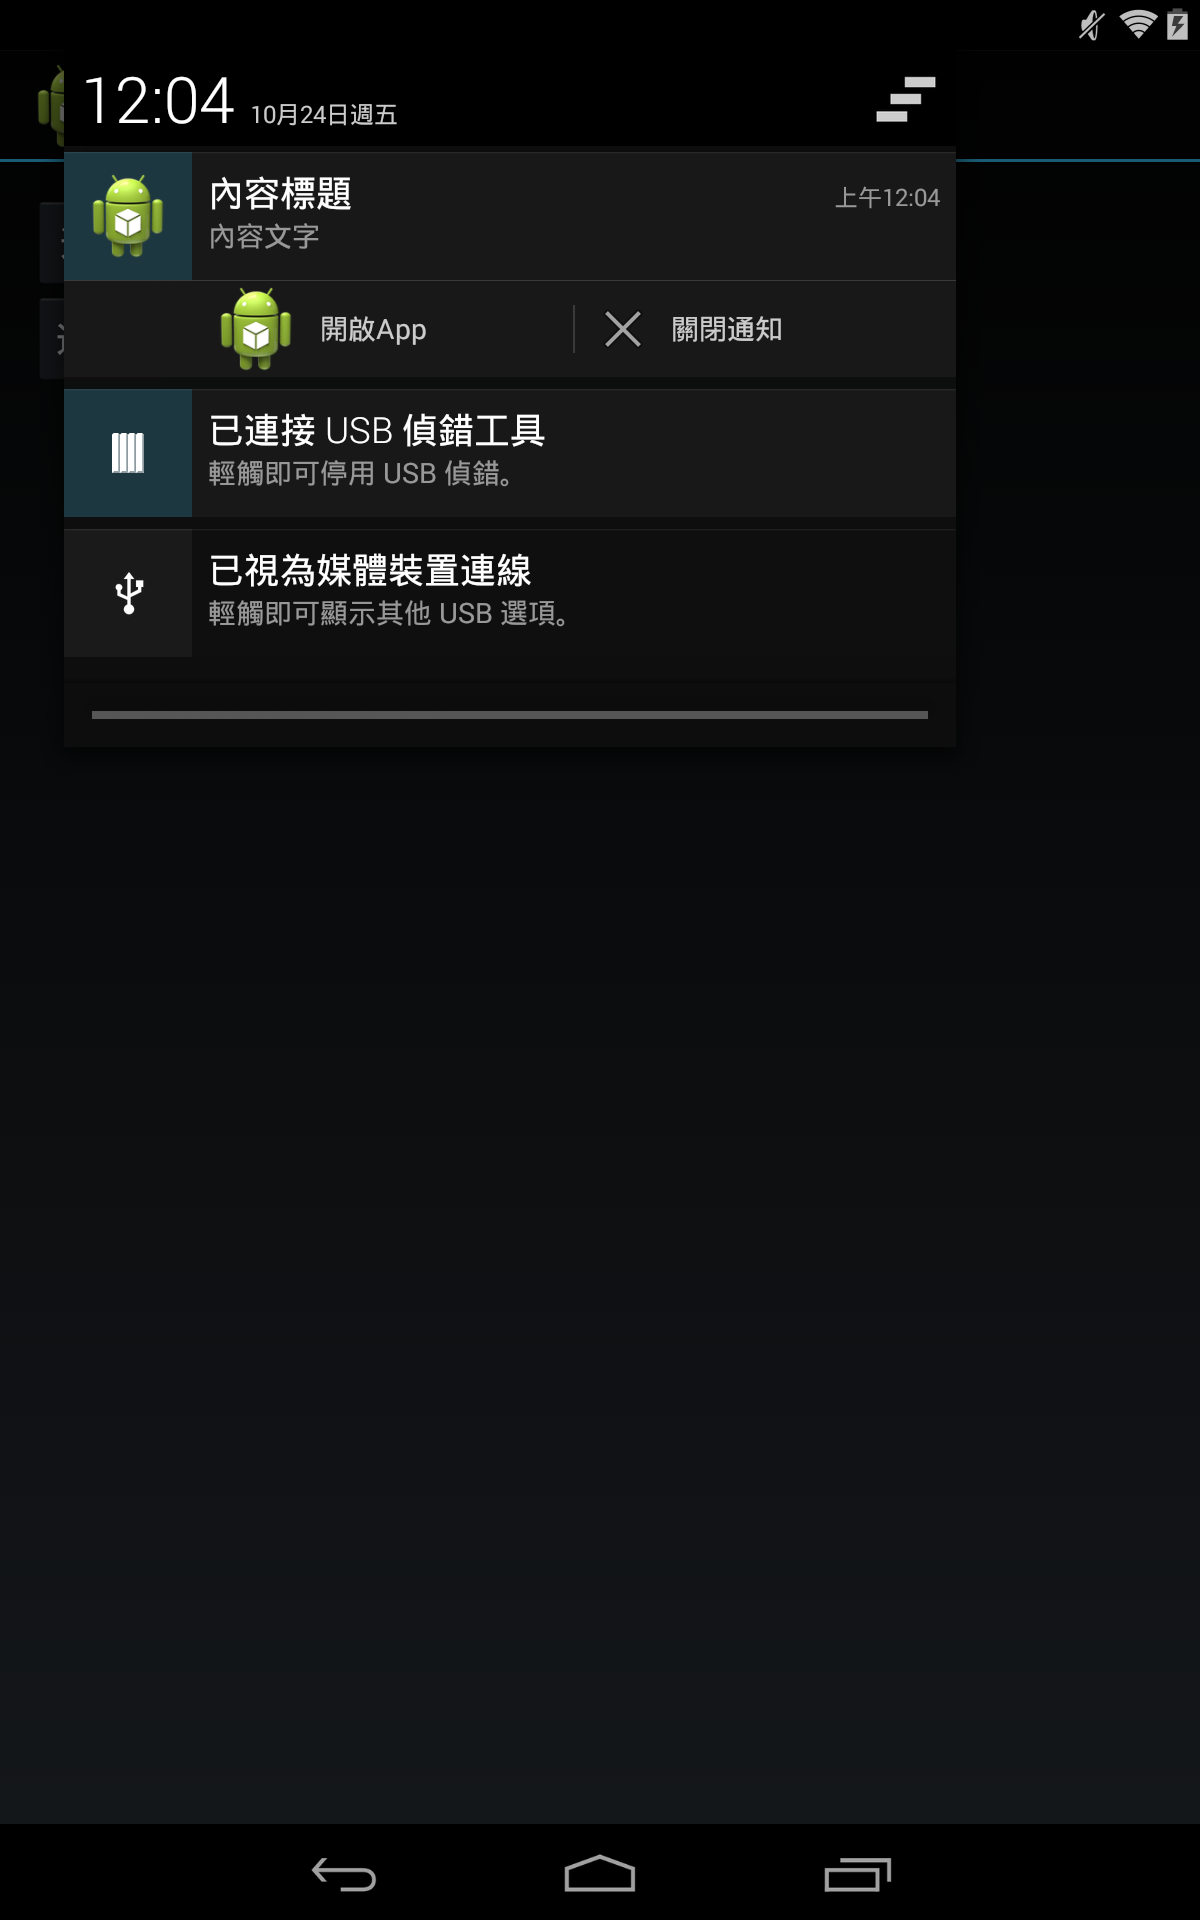 Android 如何顯示通知訊息(Notifications)?